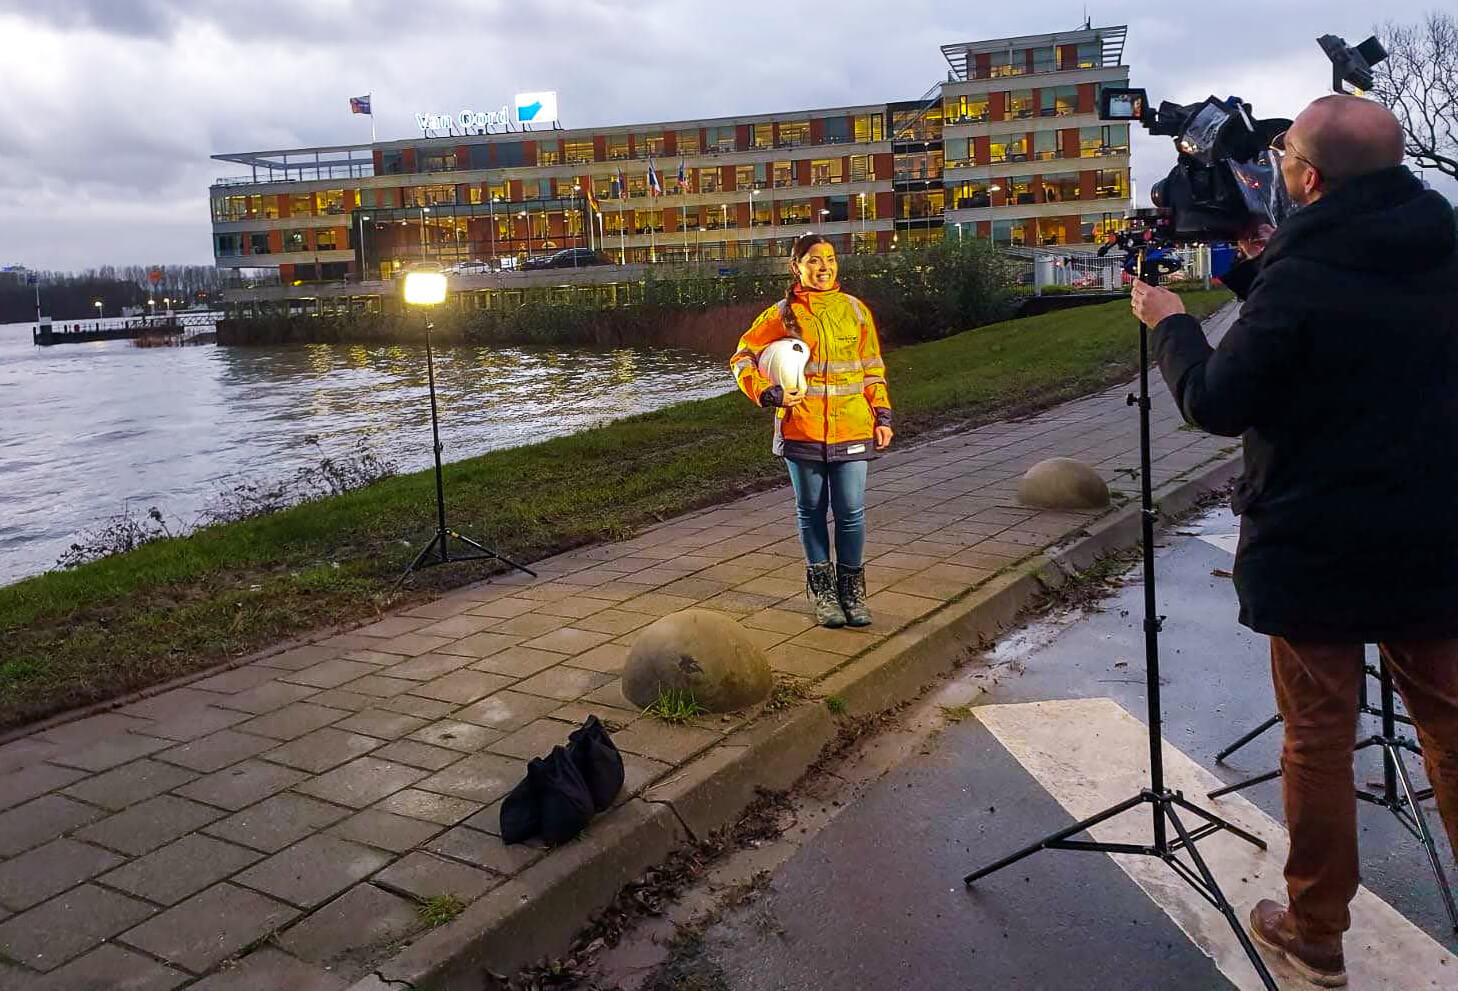 Videomarketing: strategie, concept, productie, regie, camera en edit ten behoeve van Employer Branding voor Van Oord.